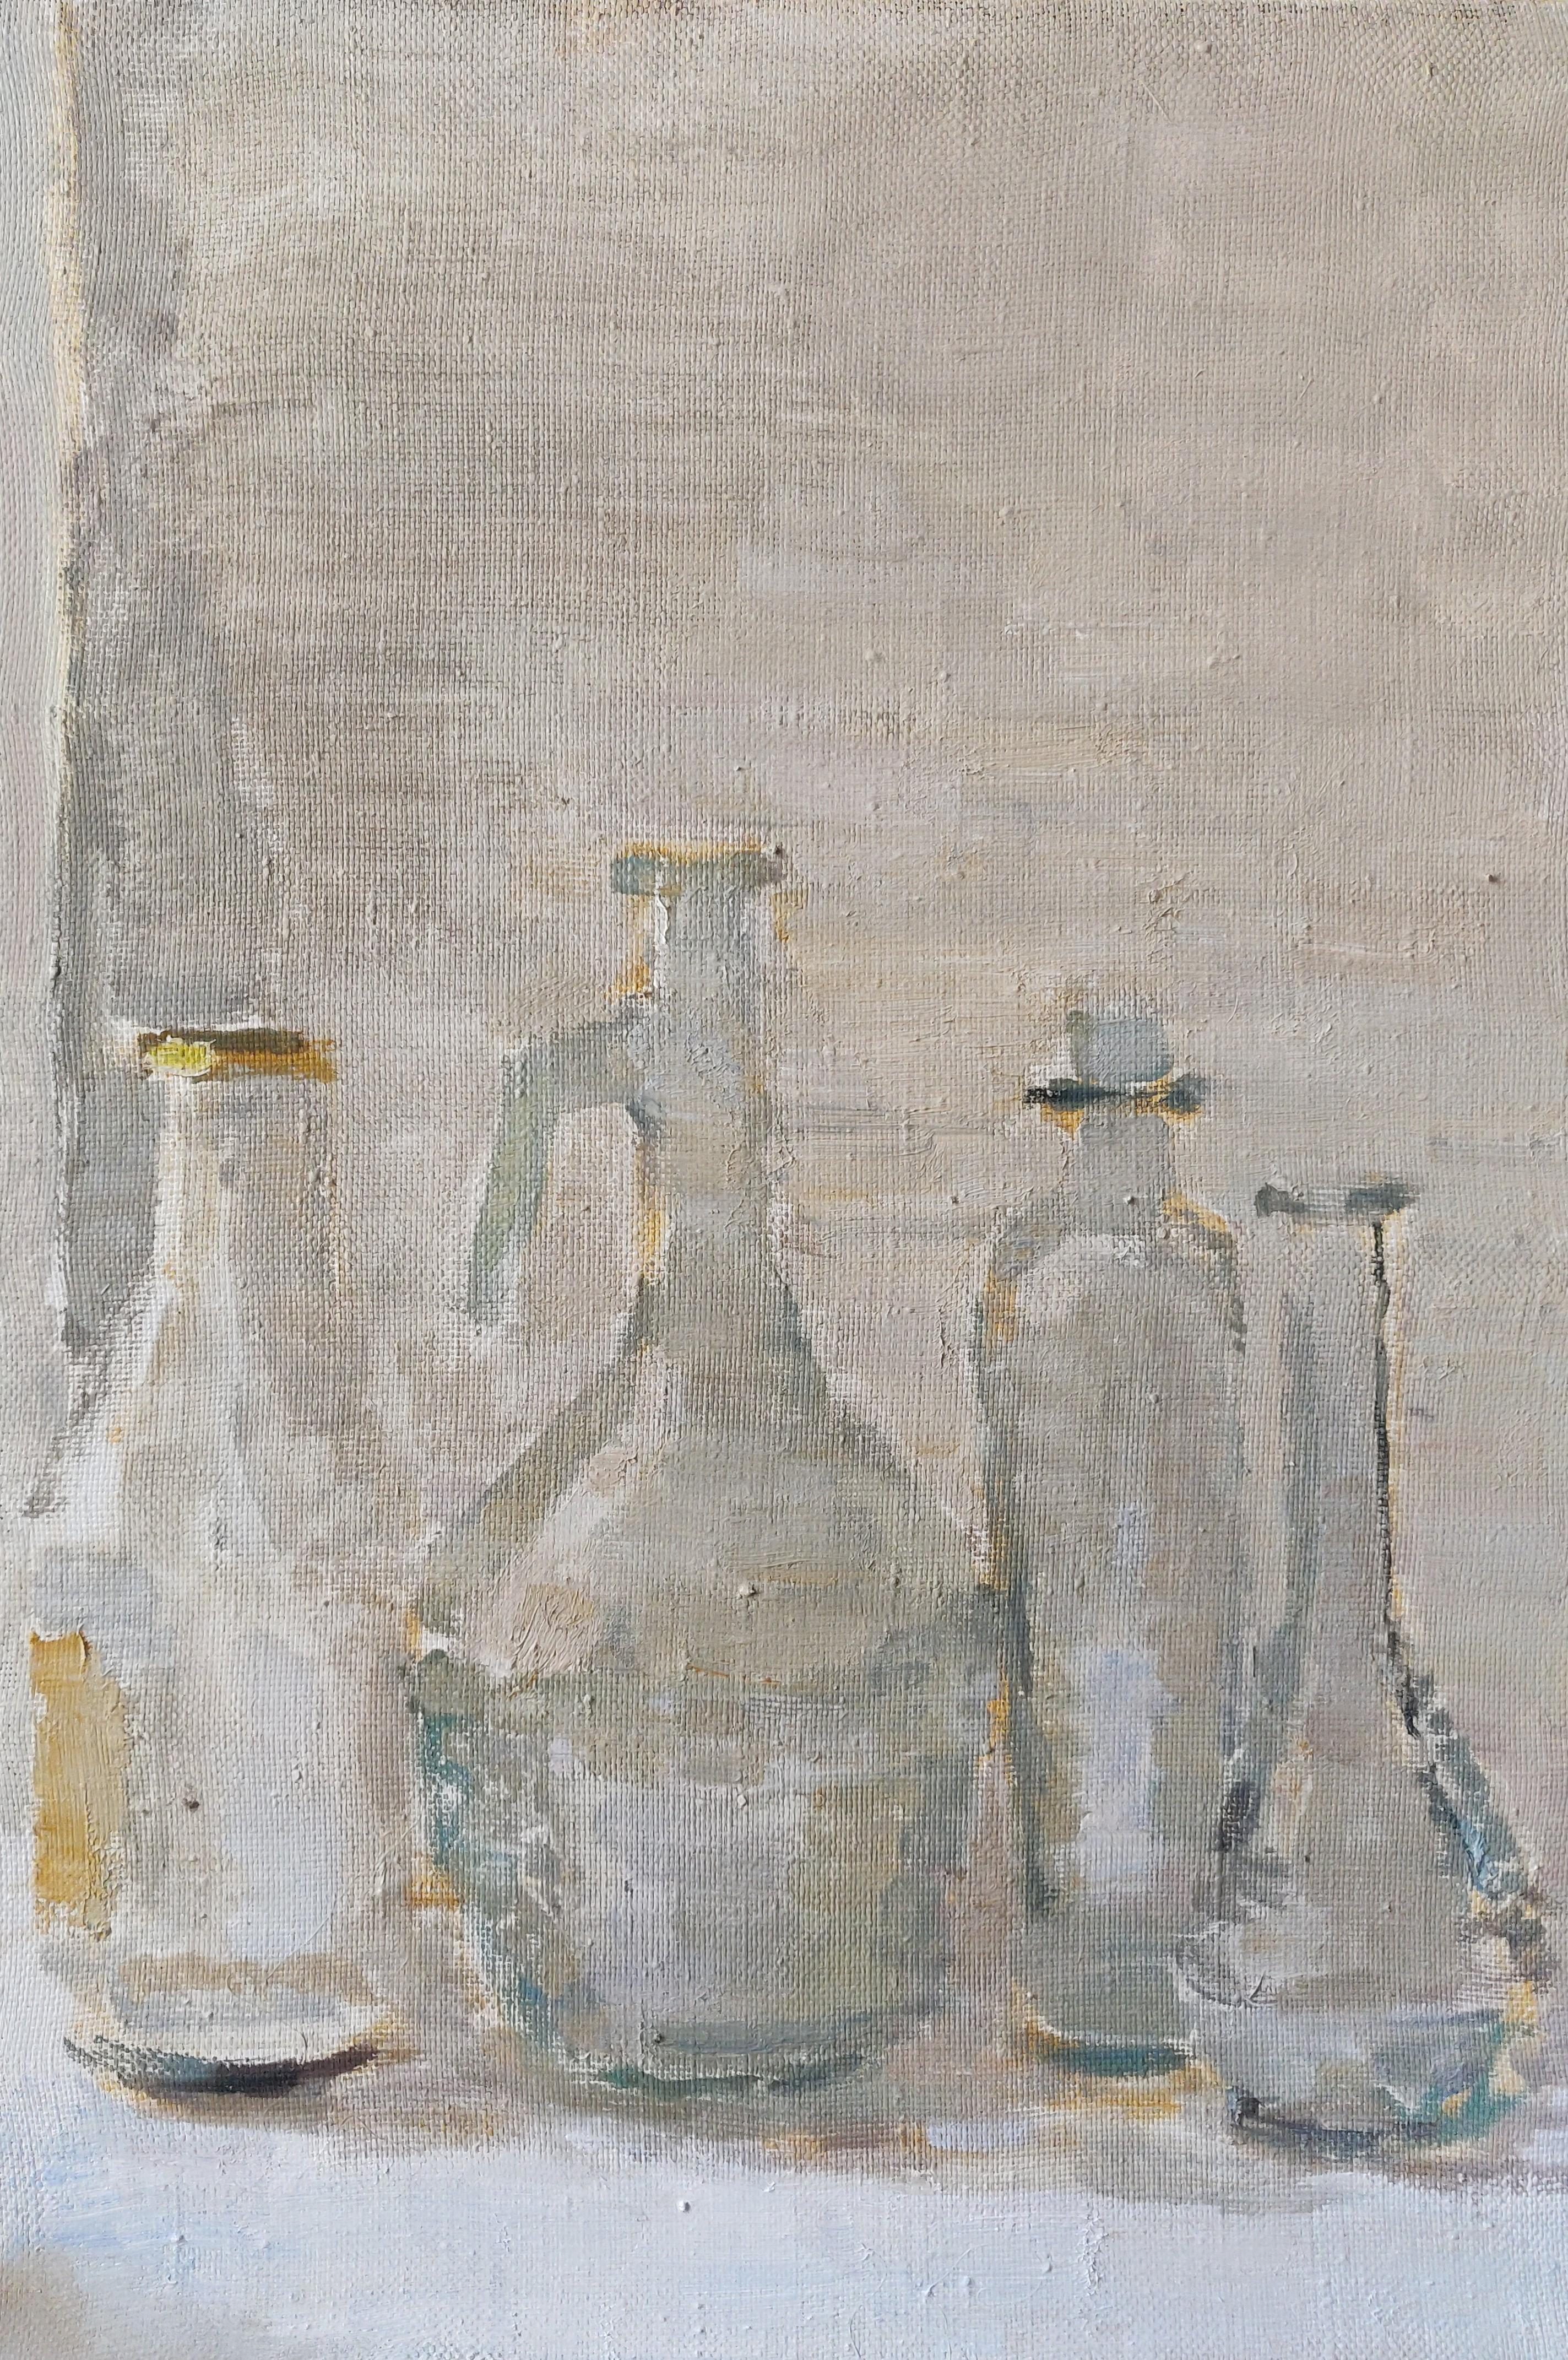 Still Life With Glass Vessels - 21st Century Contemporary Oil Painting